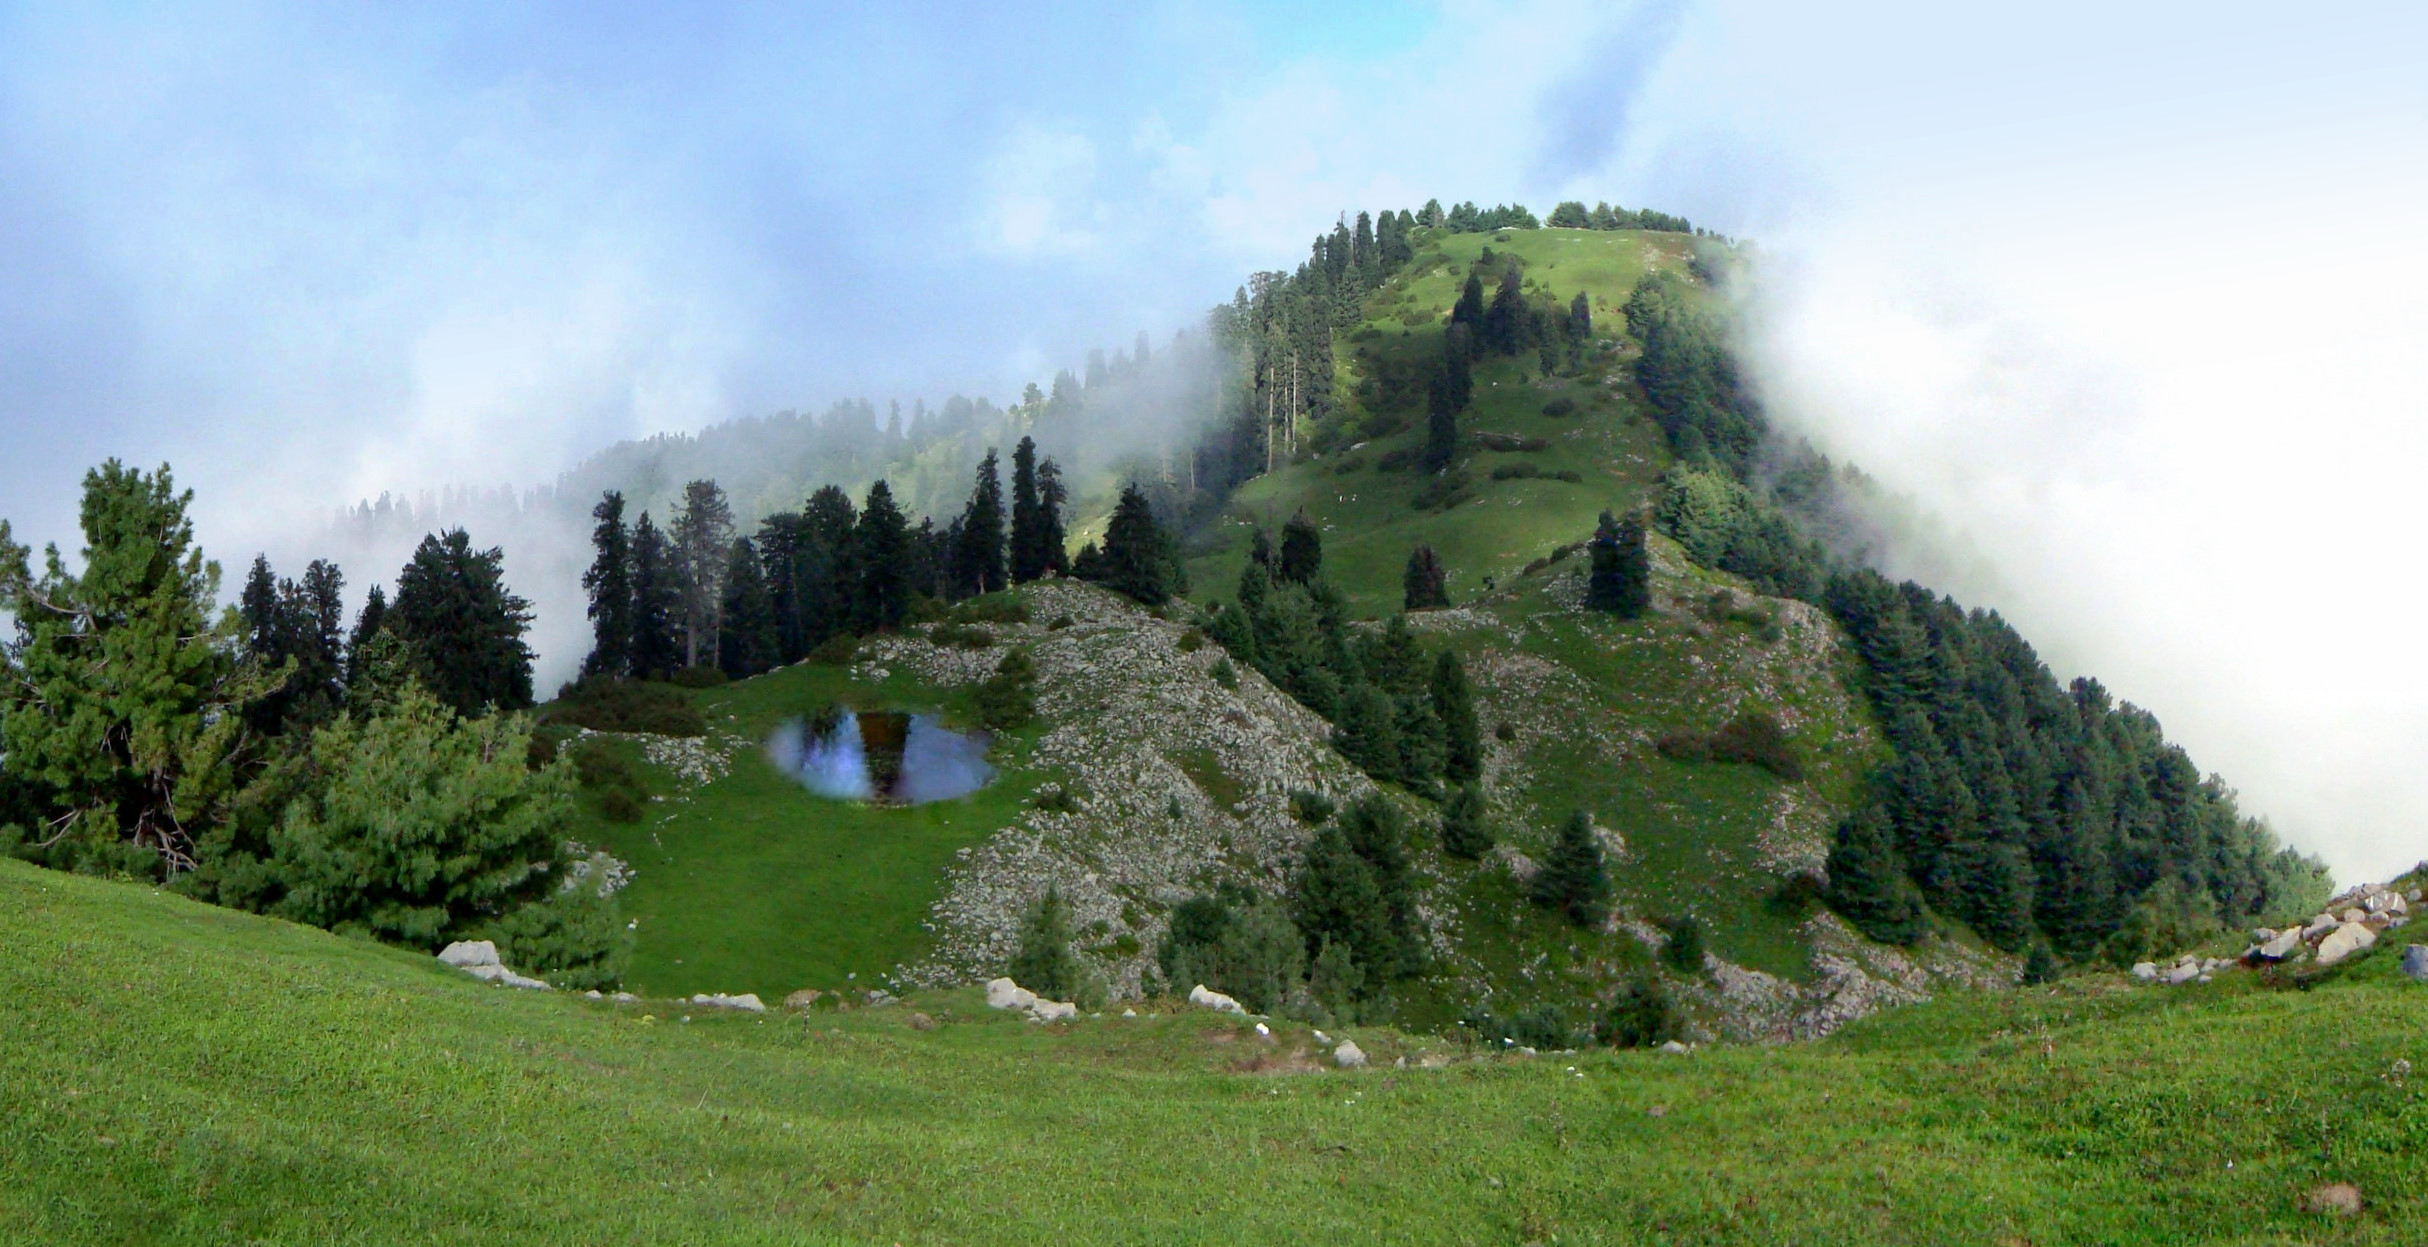 Mushkpuri Top - Attraction in Galiyat Region